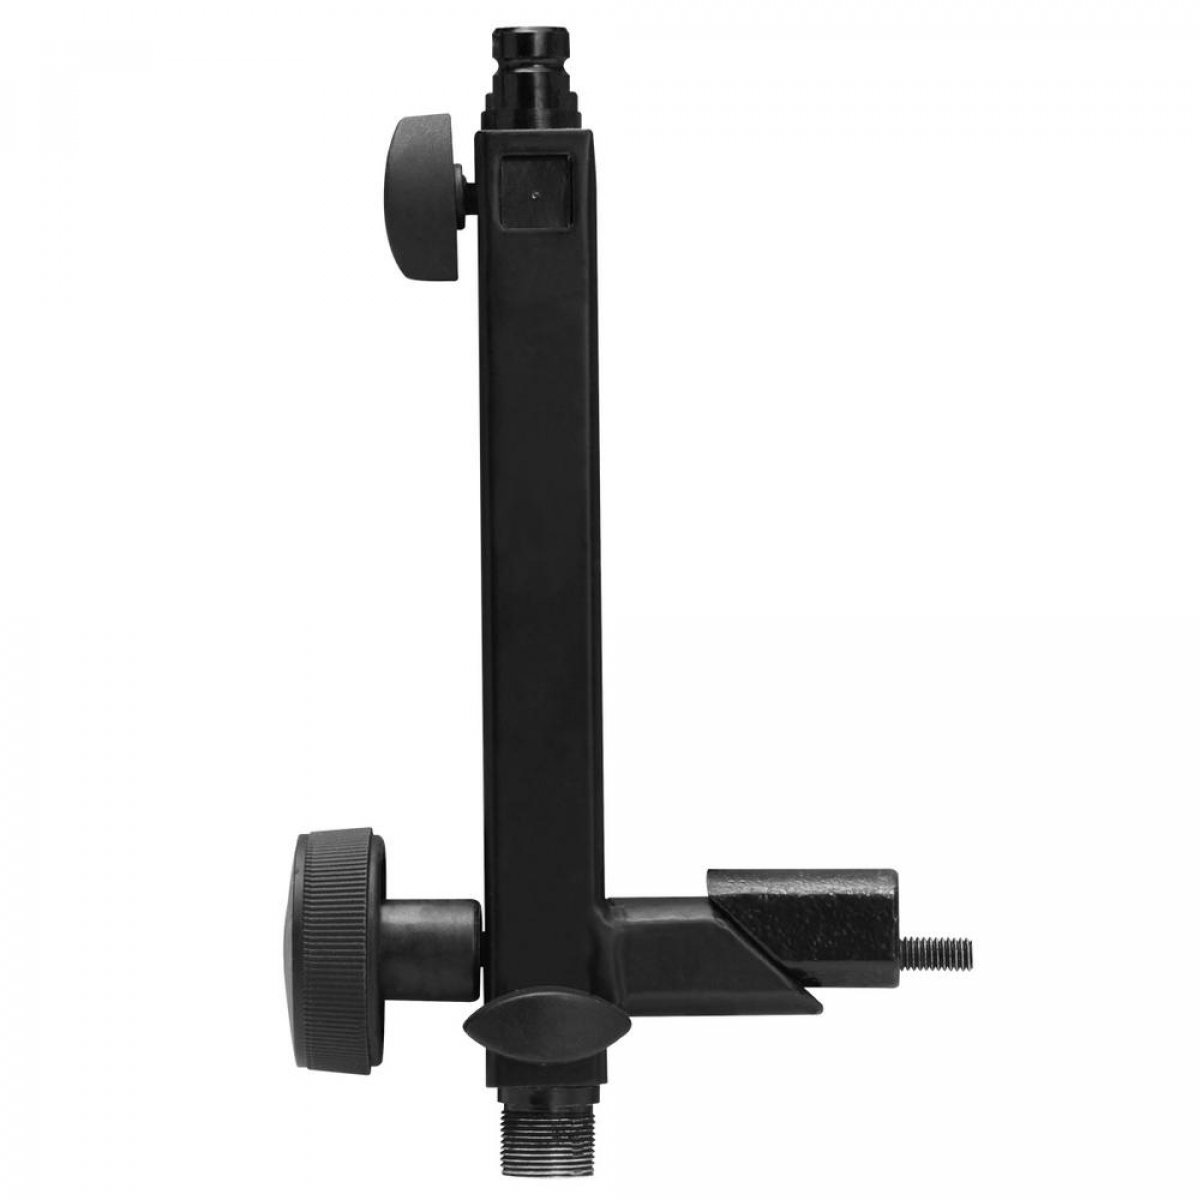 Universal Adapter for Keyboard Mic & Tablet